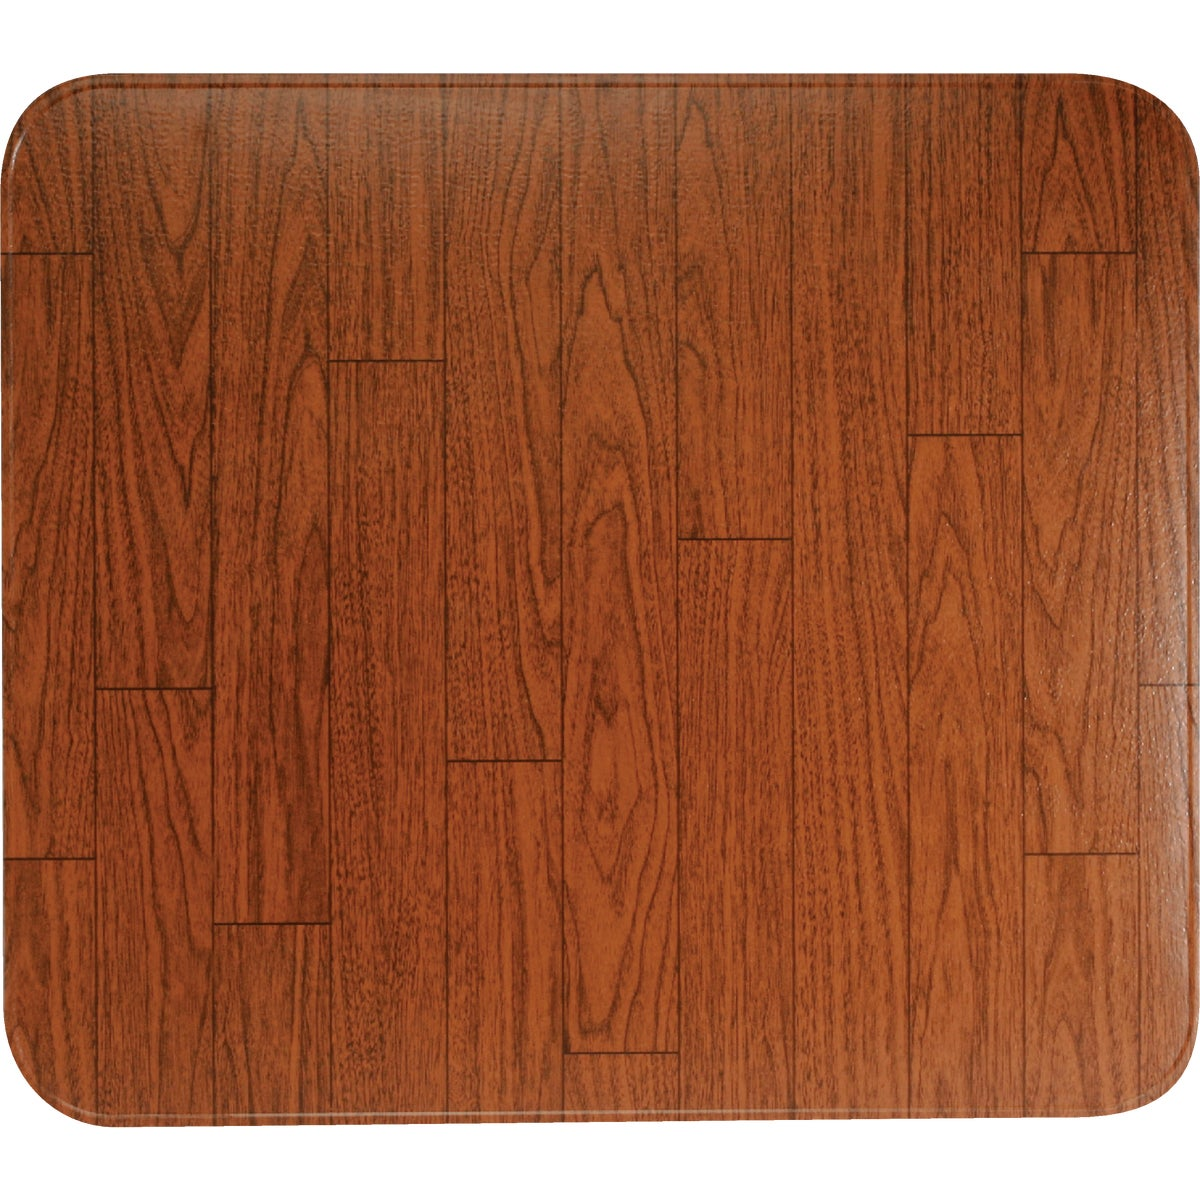 HY-C Lined Stove Board, L3636WW-3